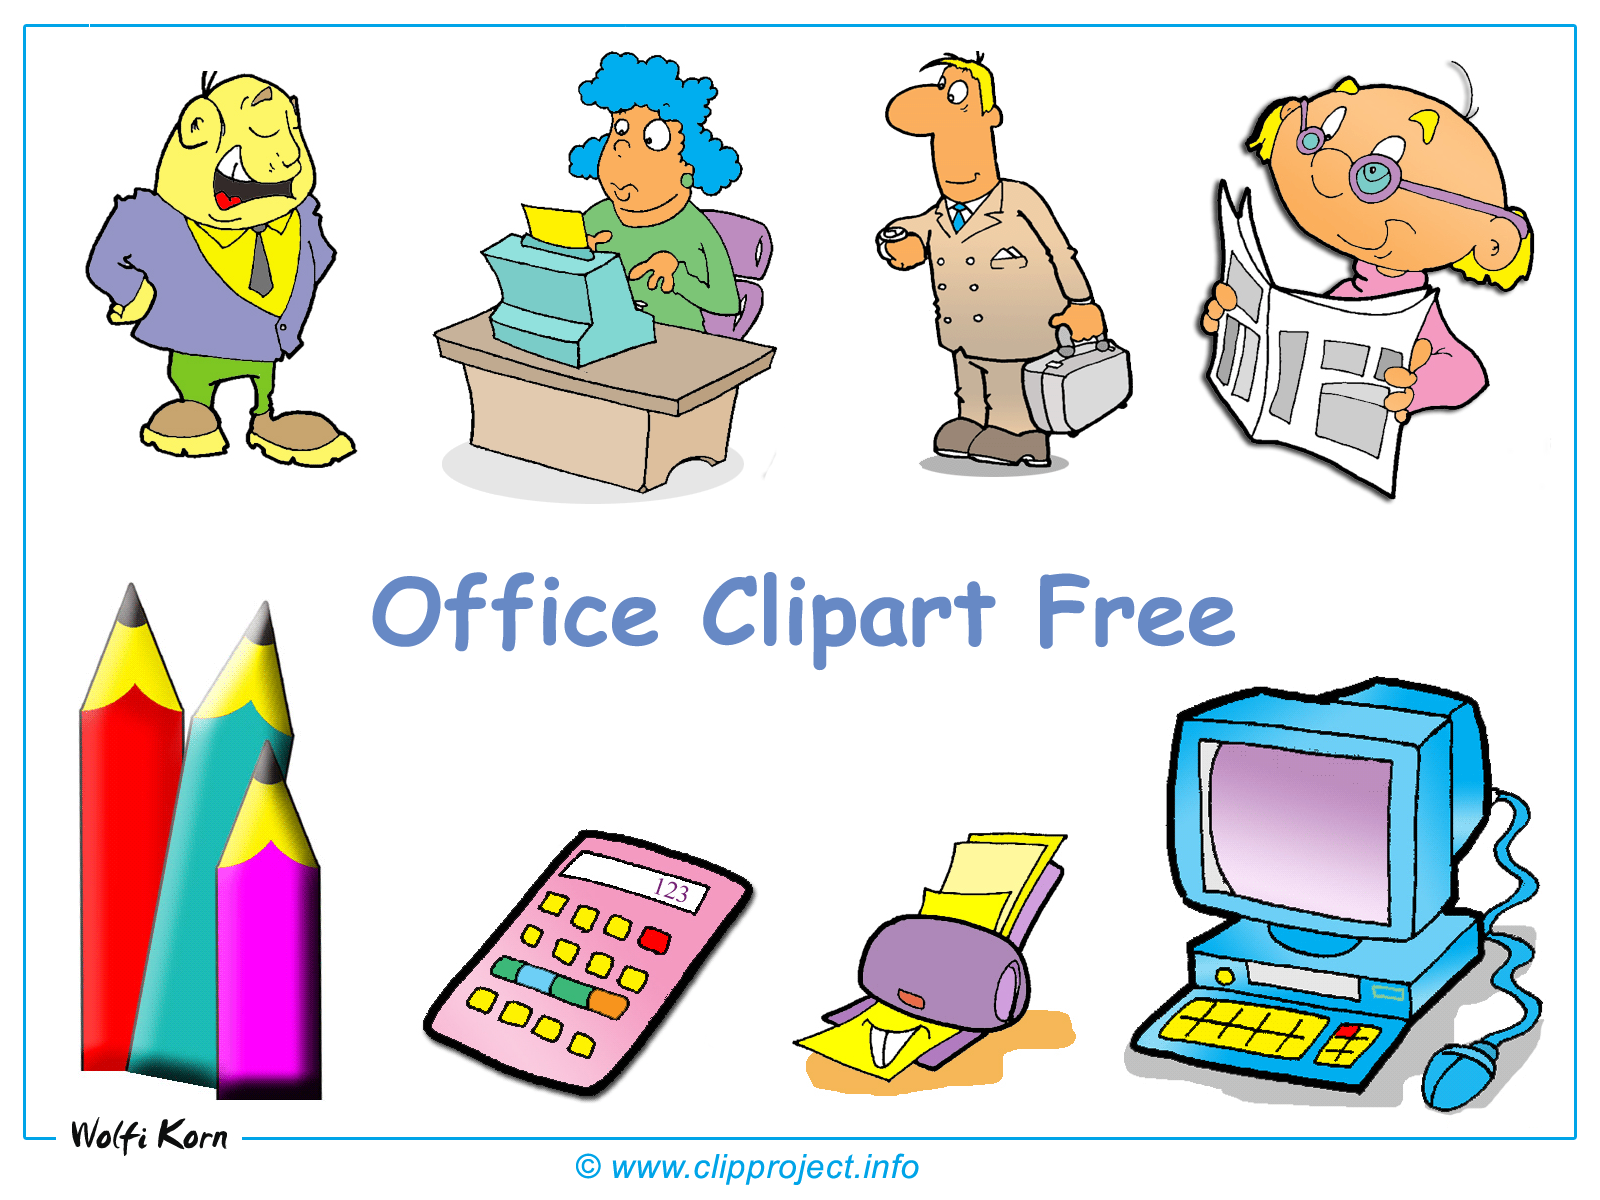 Office Clipart Free Download 115